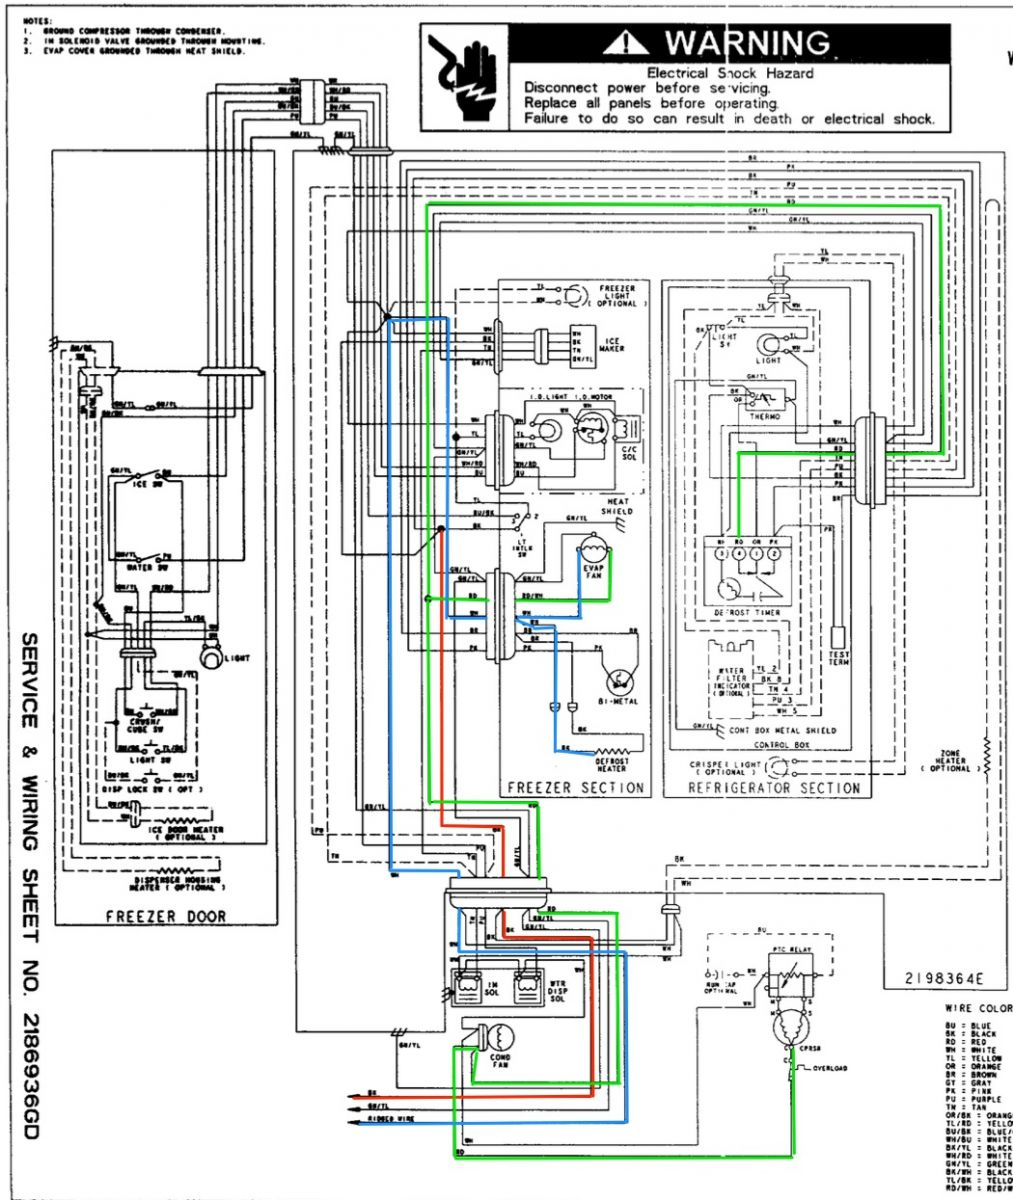 Whirlpool    ED25RFXFW01    Refrigerator       Wiring       Diagram     The